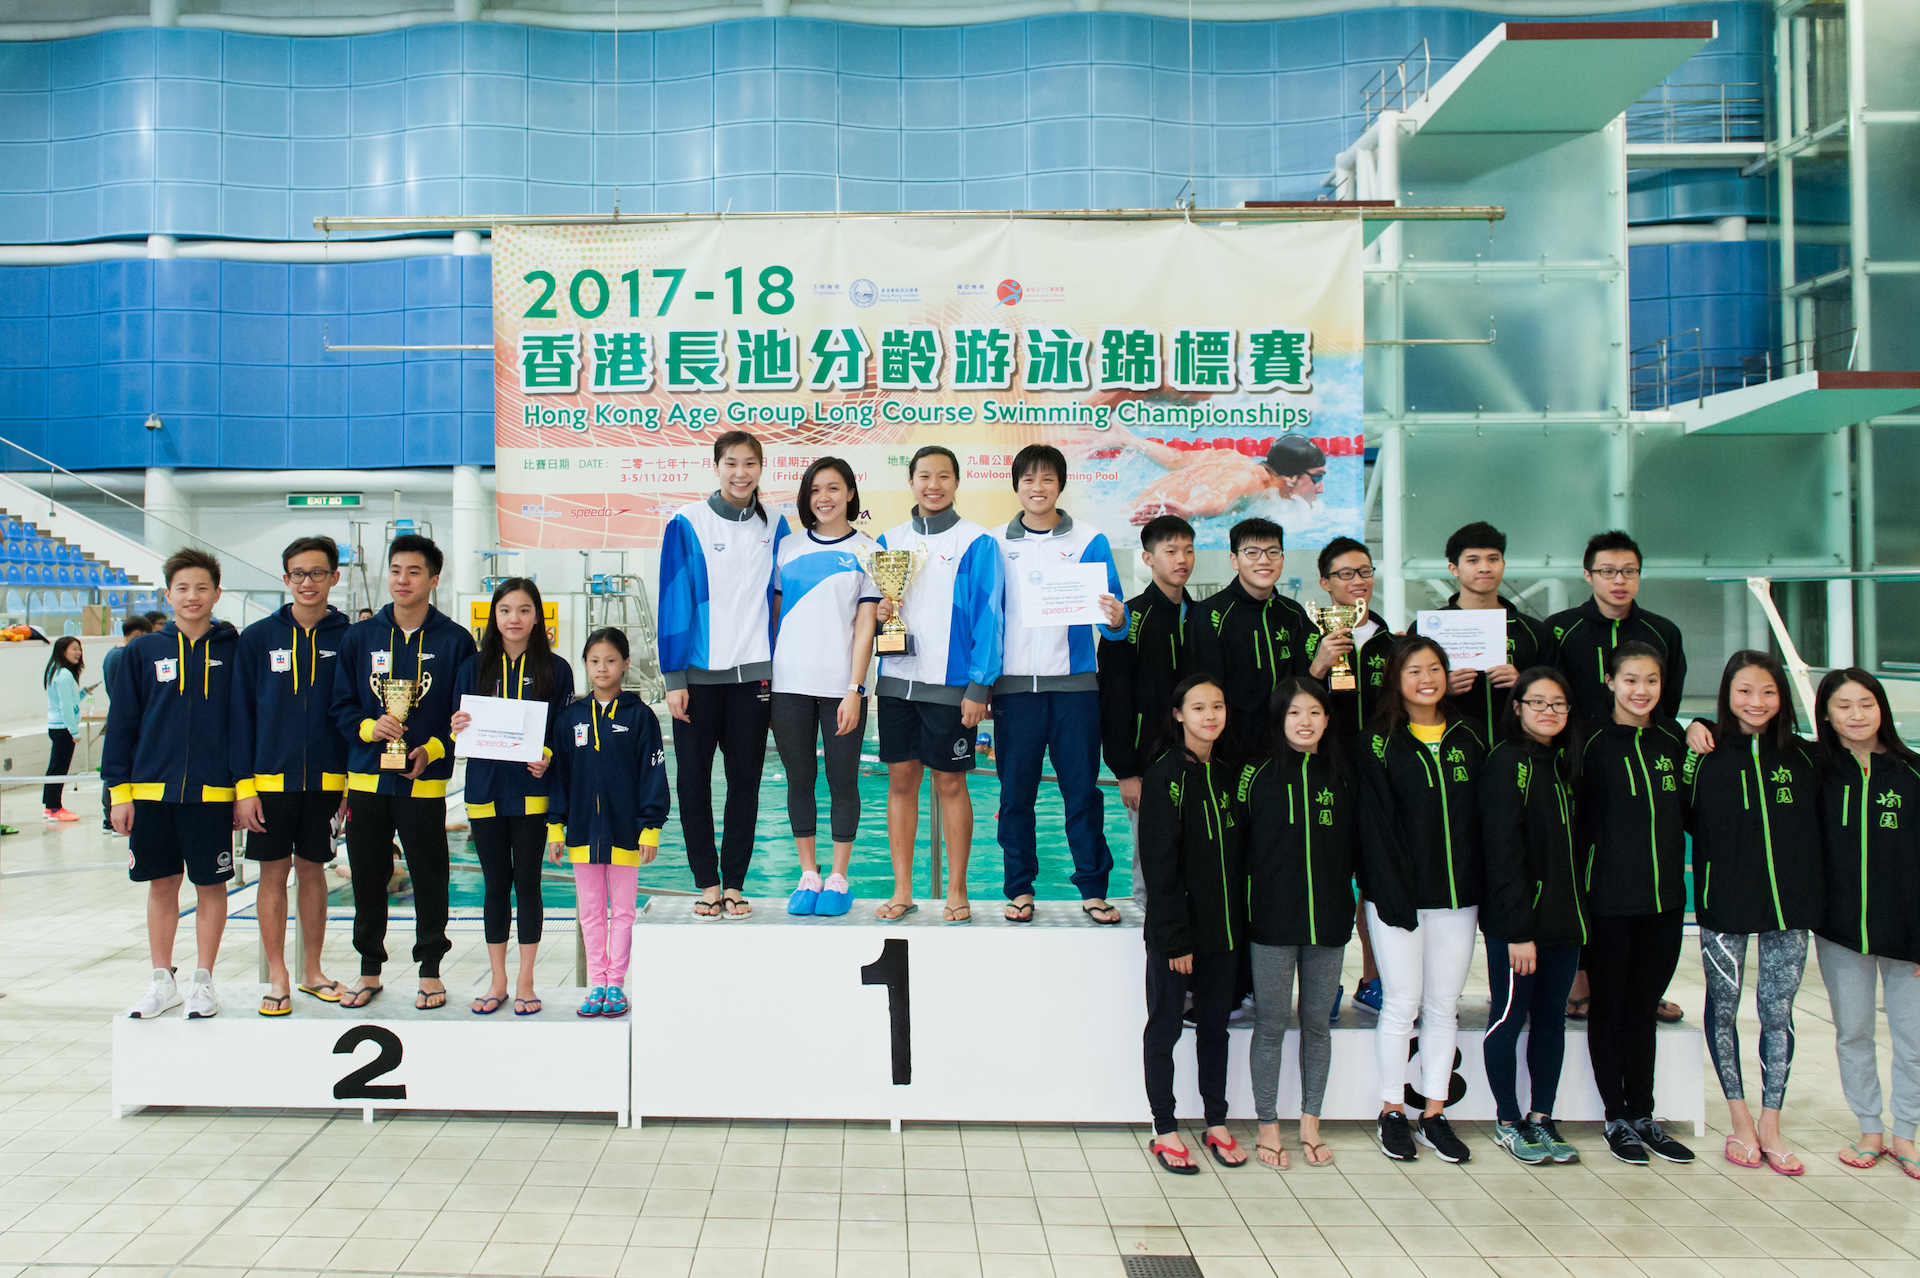 Win Tin Swimming Club - 2017 Long Course Age Group Championships 8